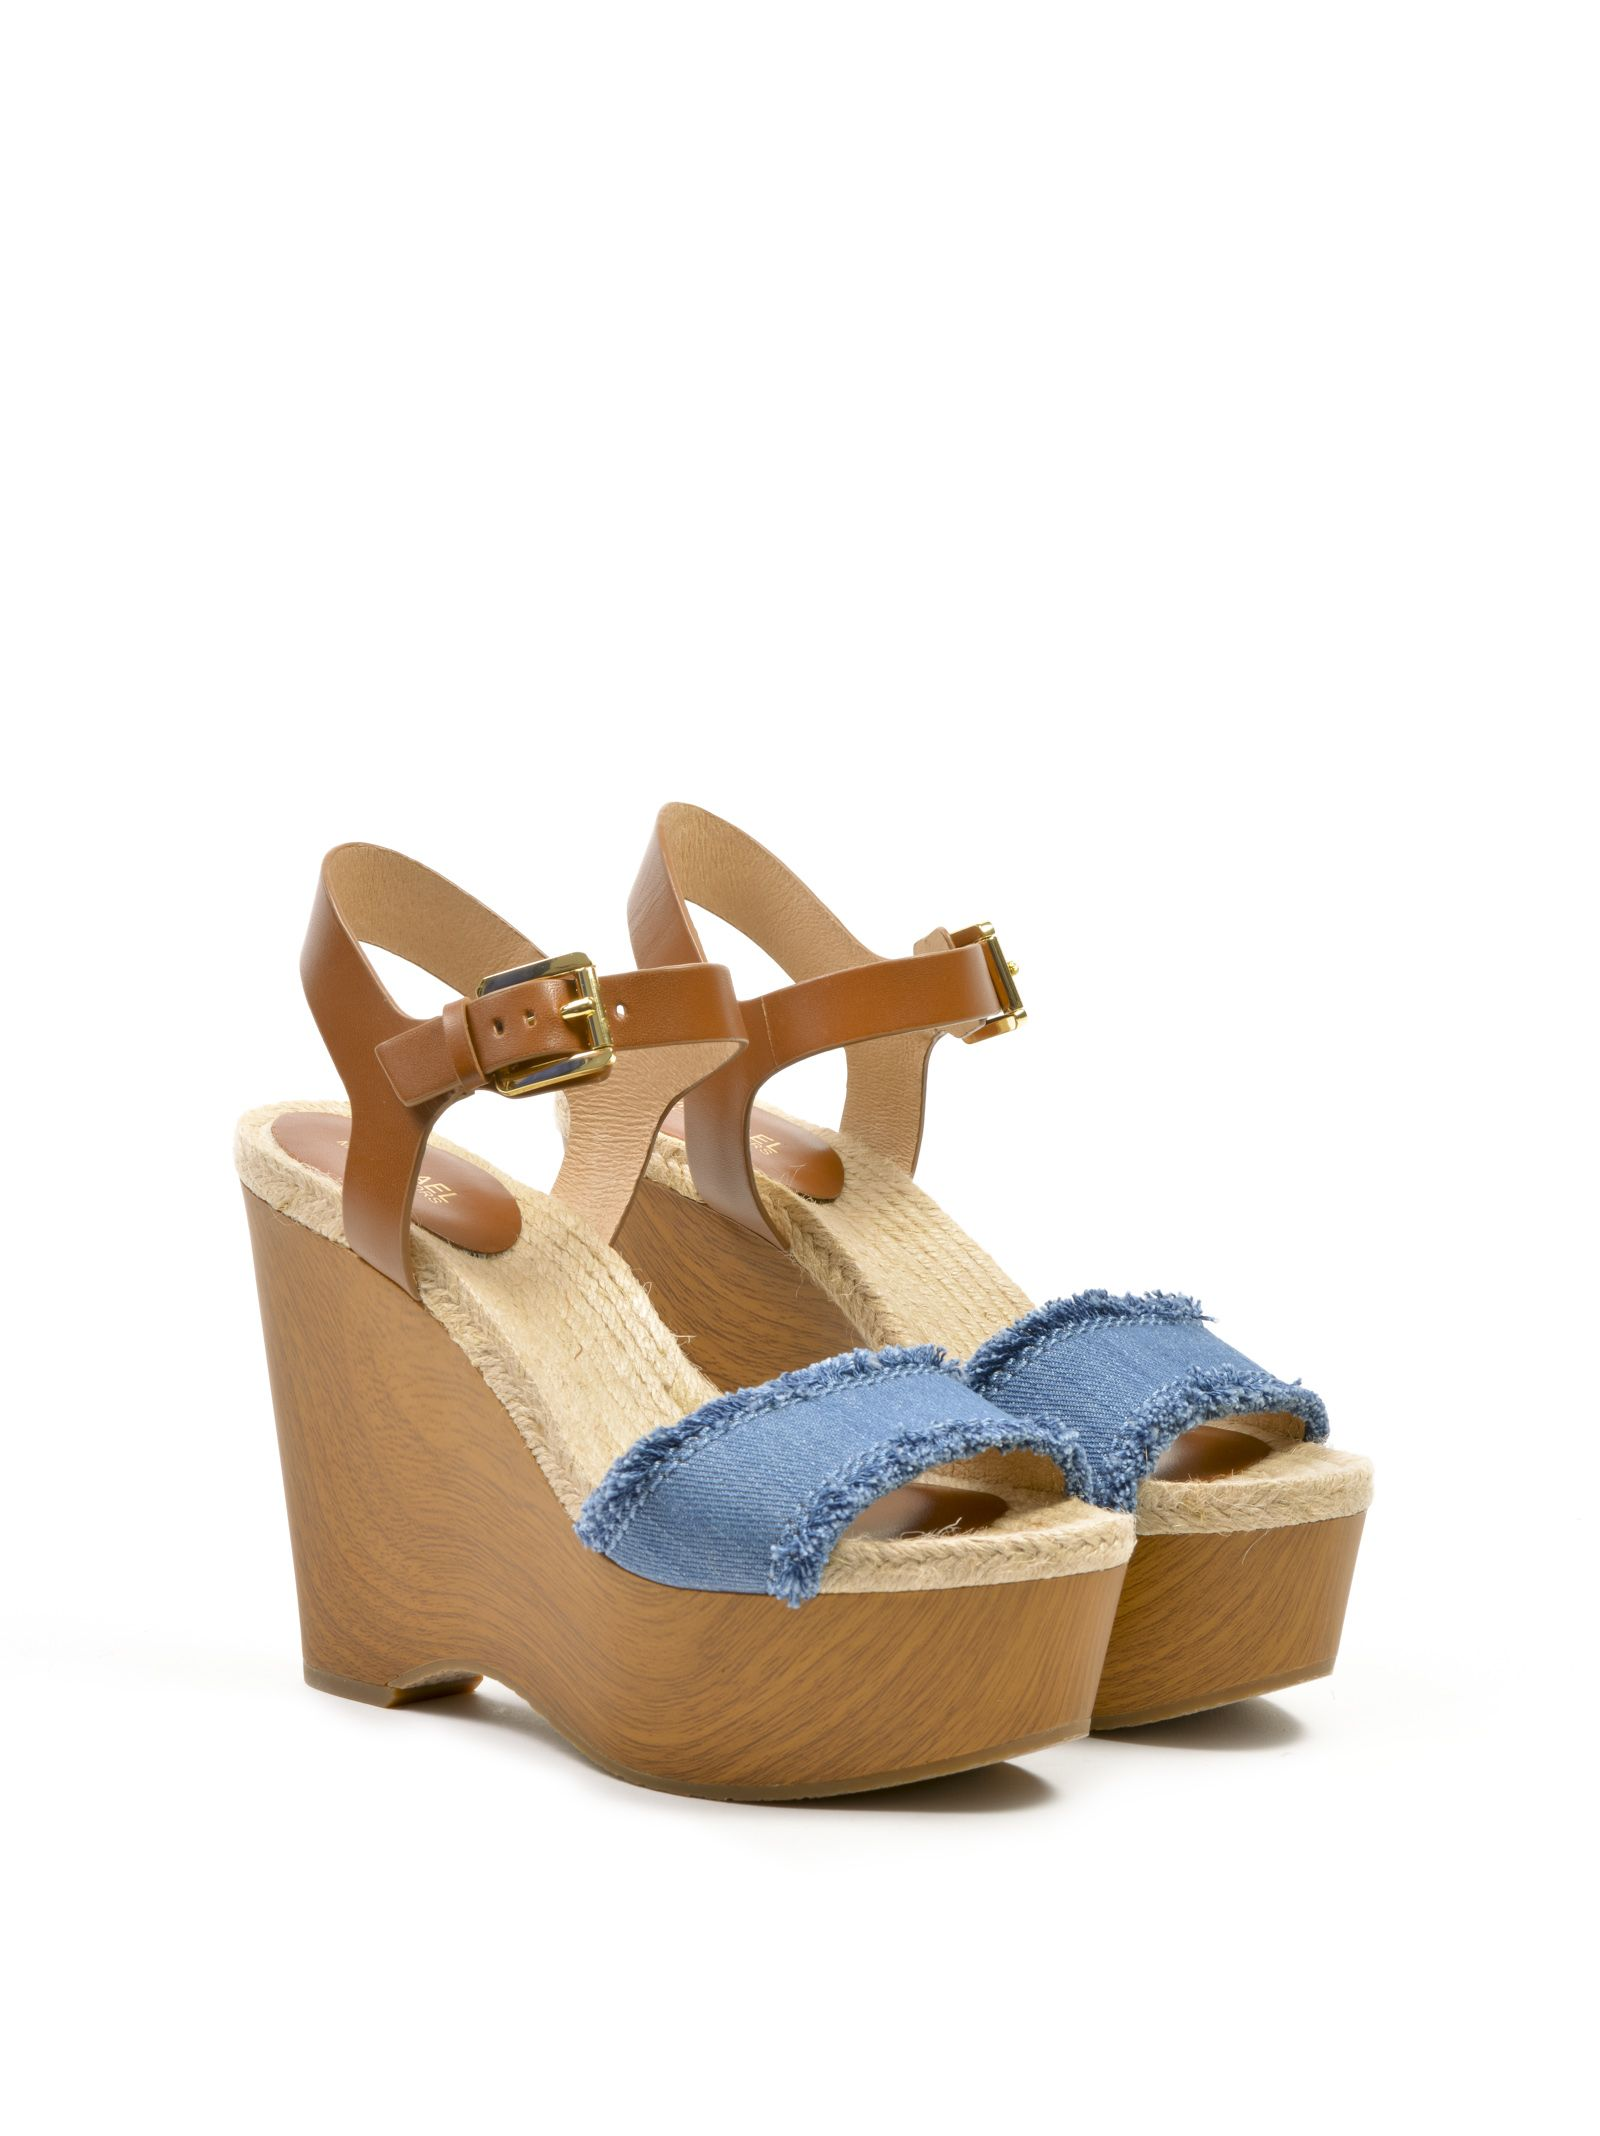 michael kors female  michael kors leni wedge sandals